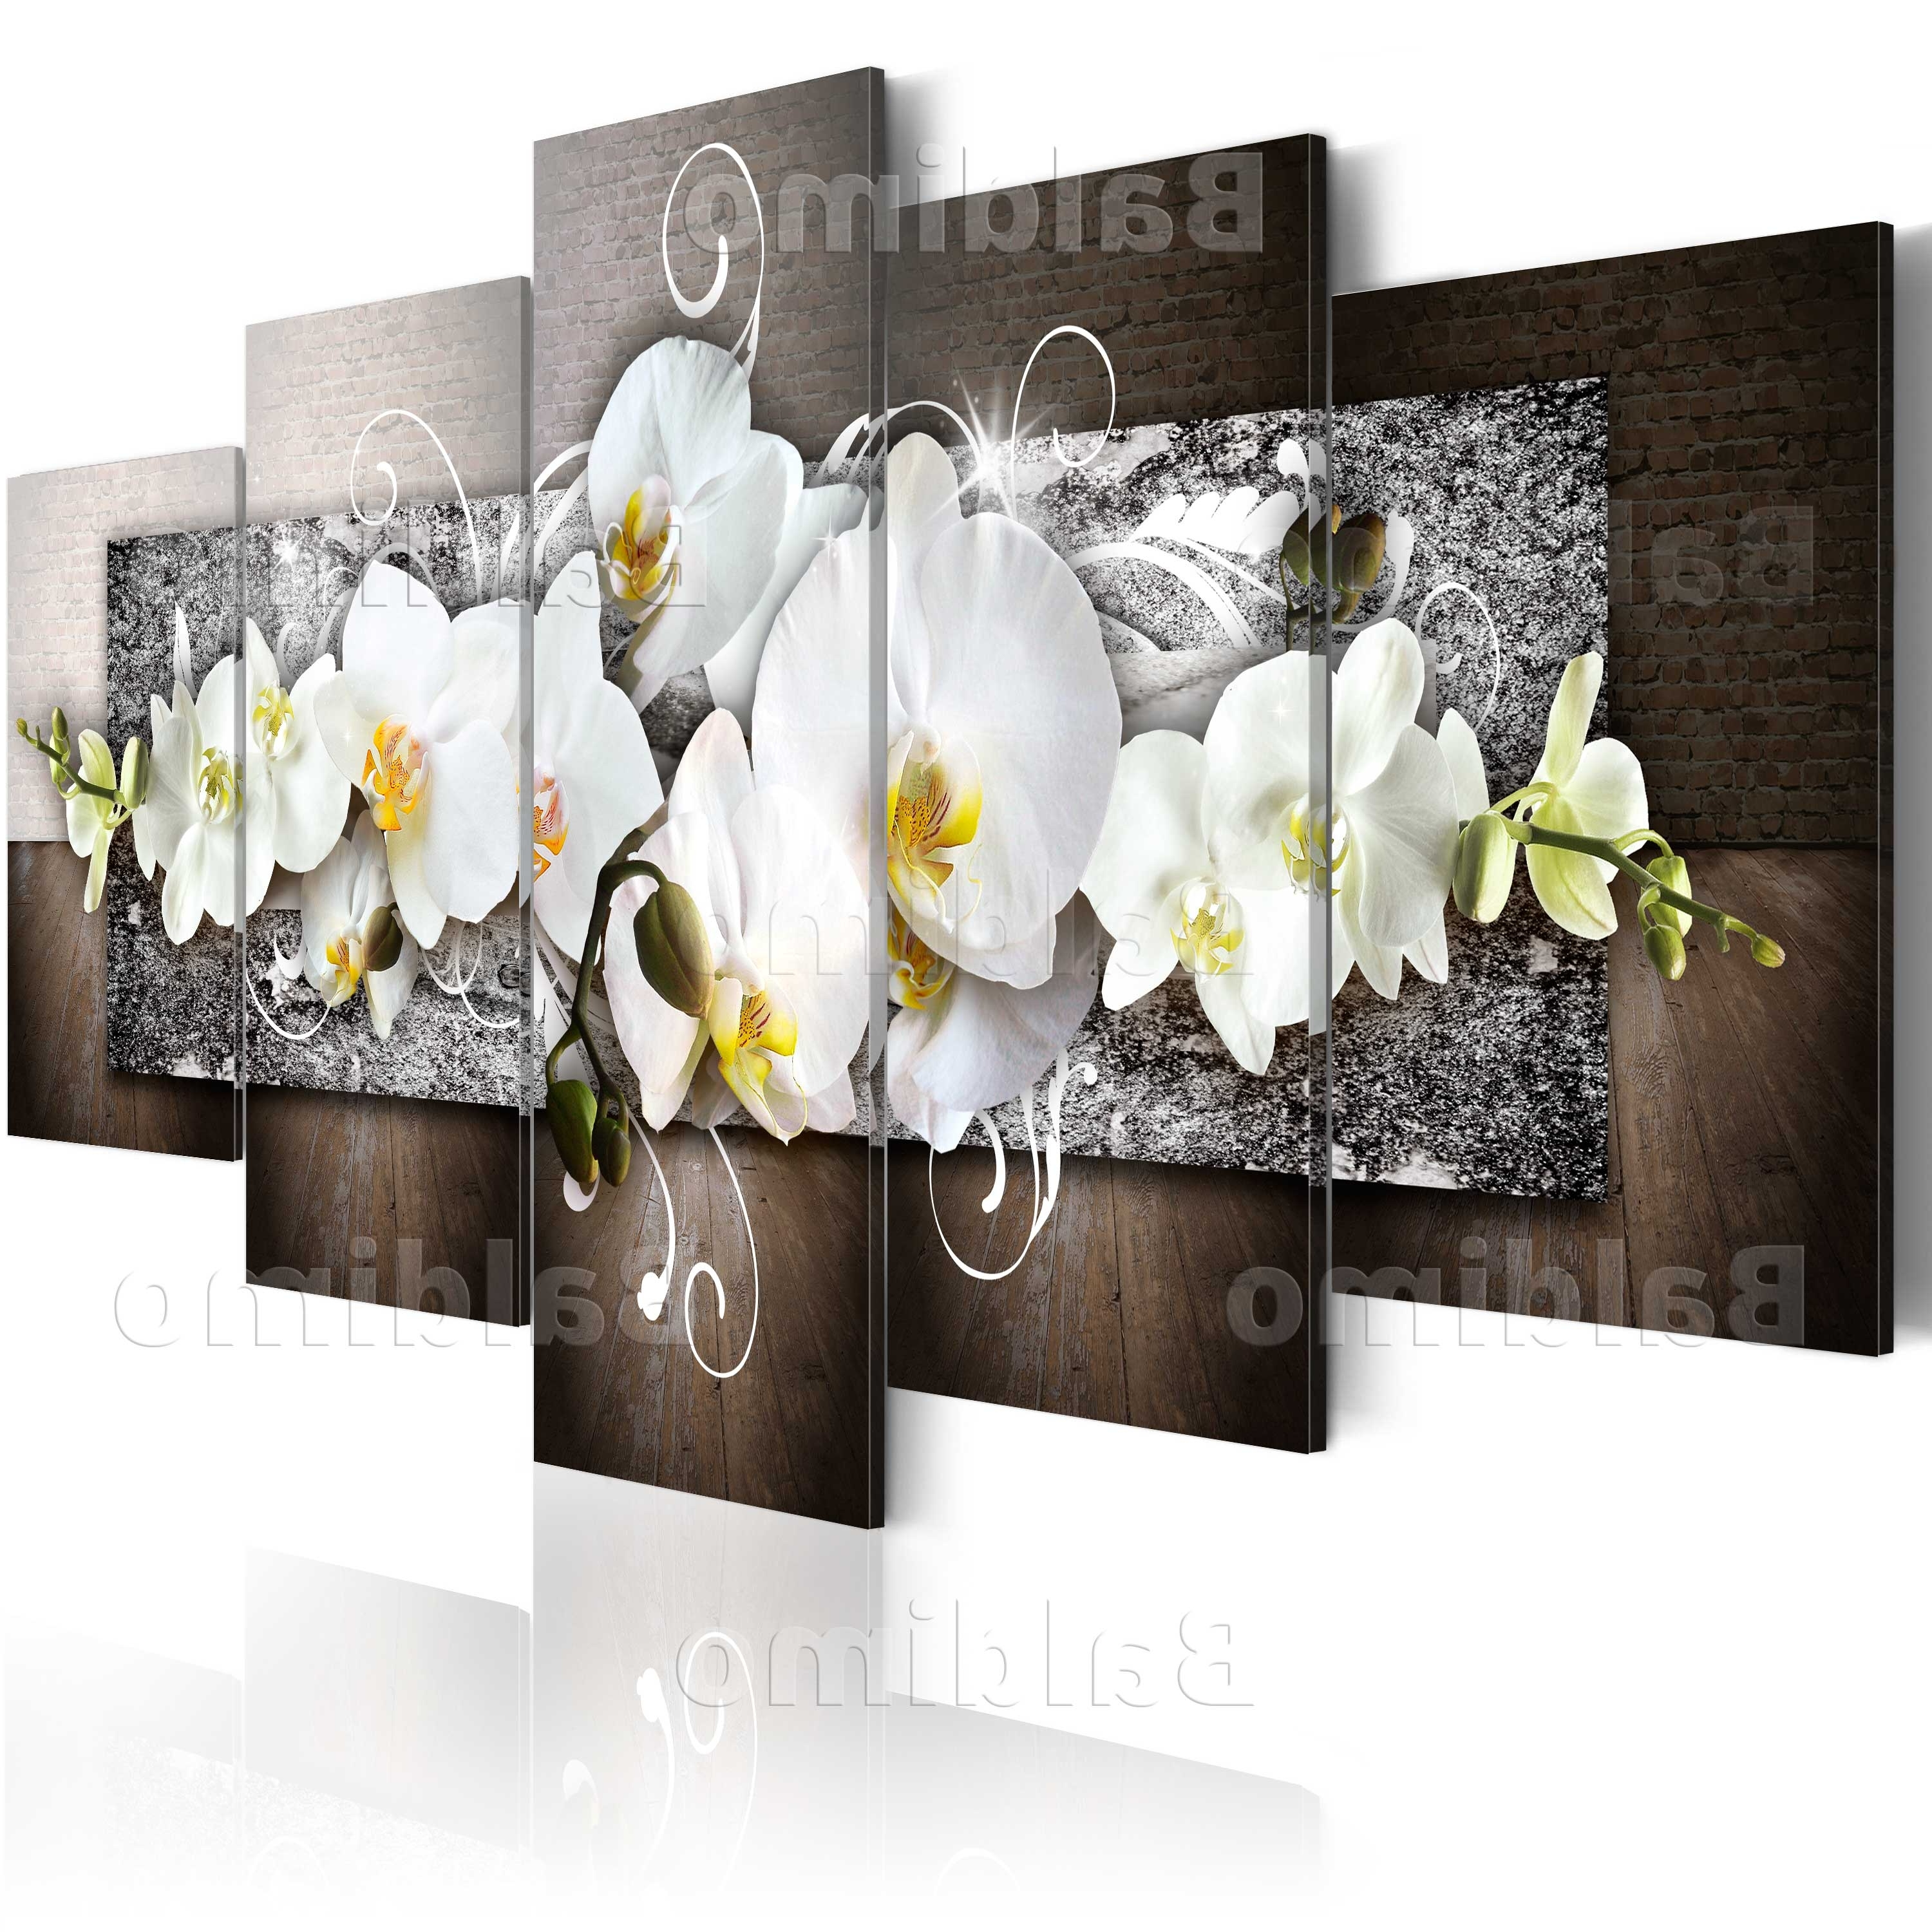 Large Canvas Wall Art With Popular Decor: Large Canvas Wall Art Print For Living Room Design With (Gallery 6 of 15)